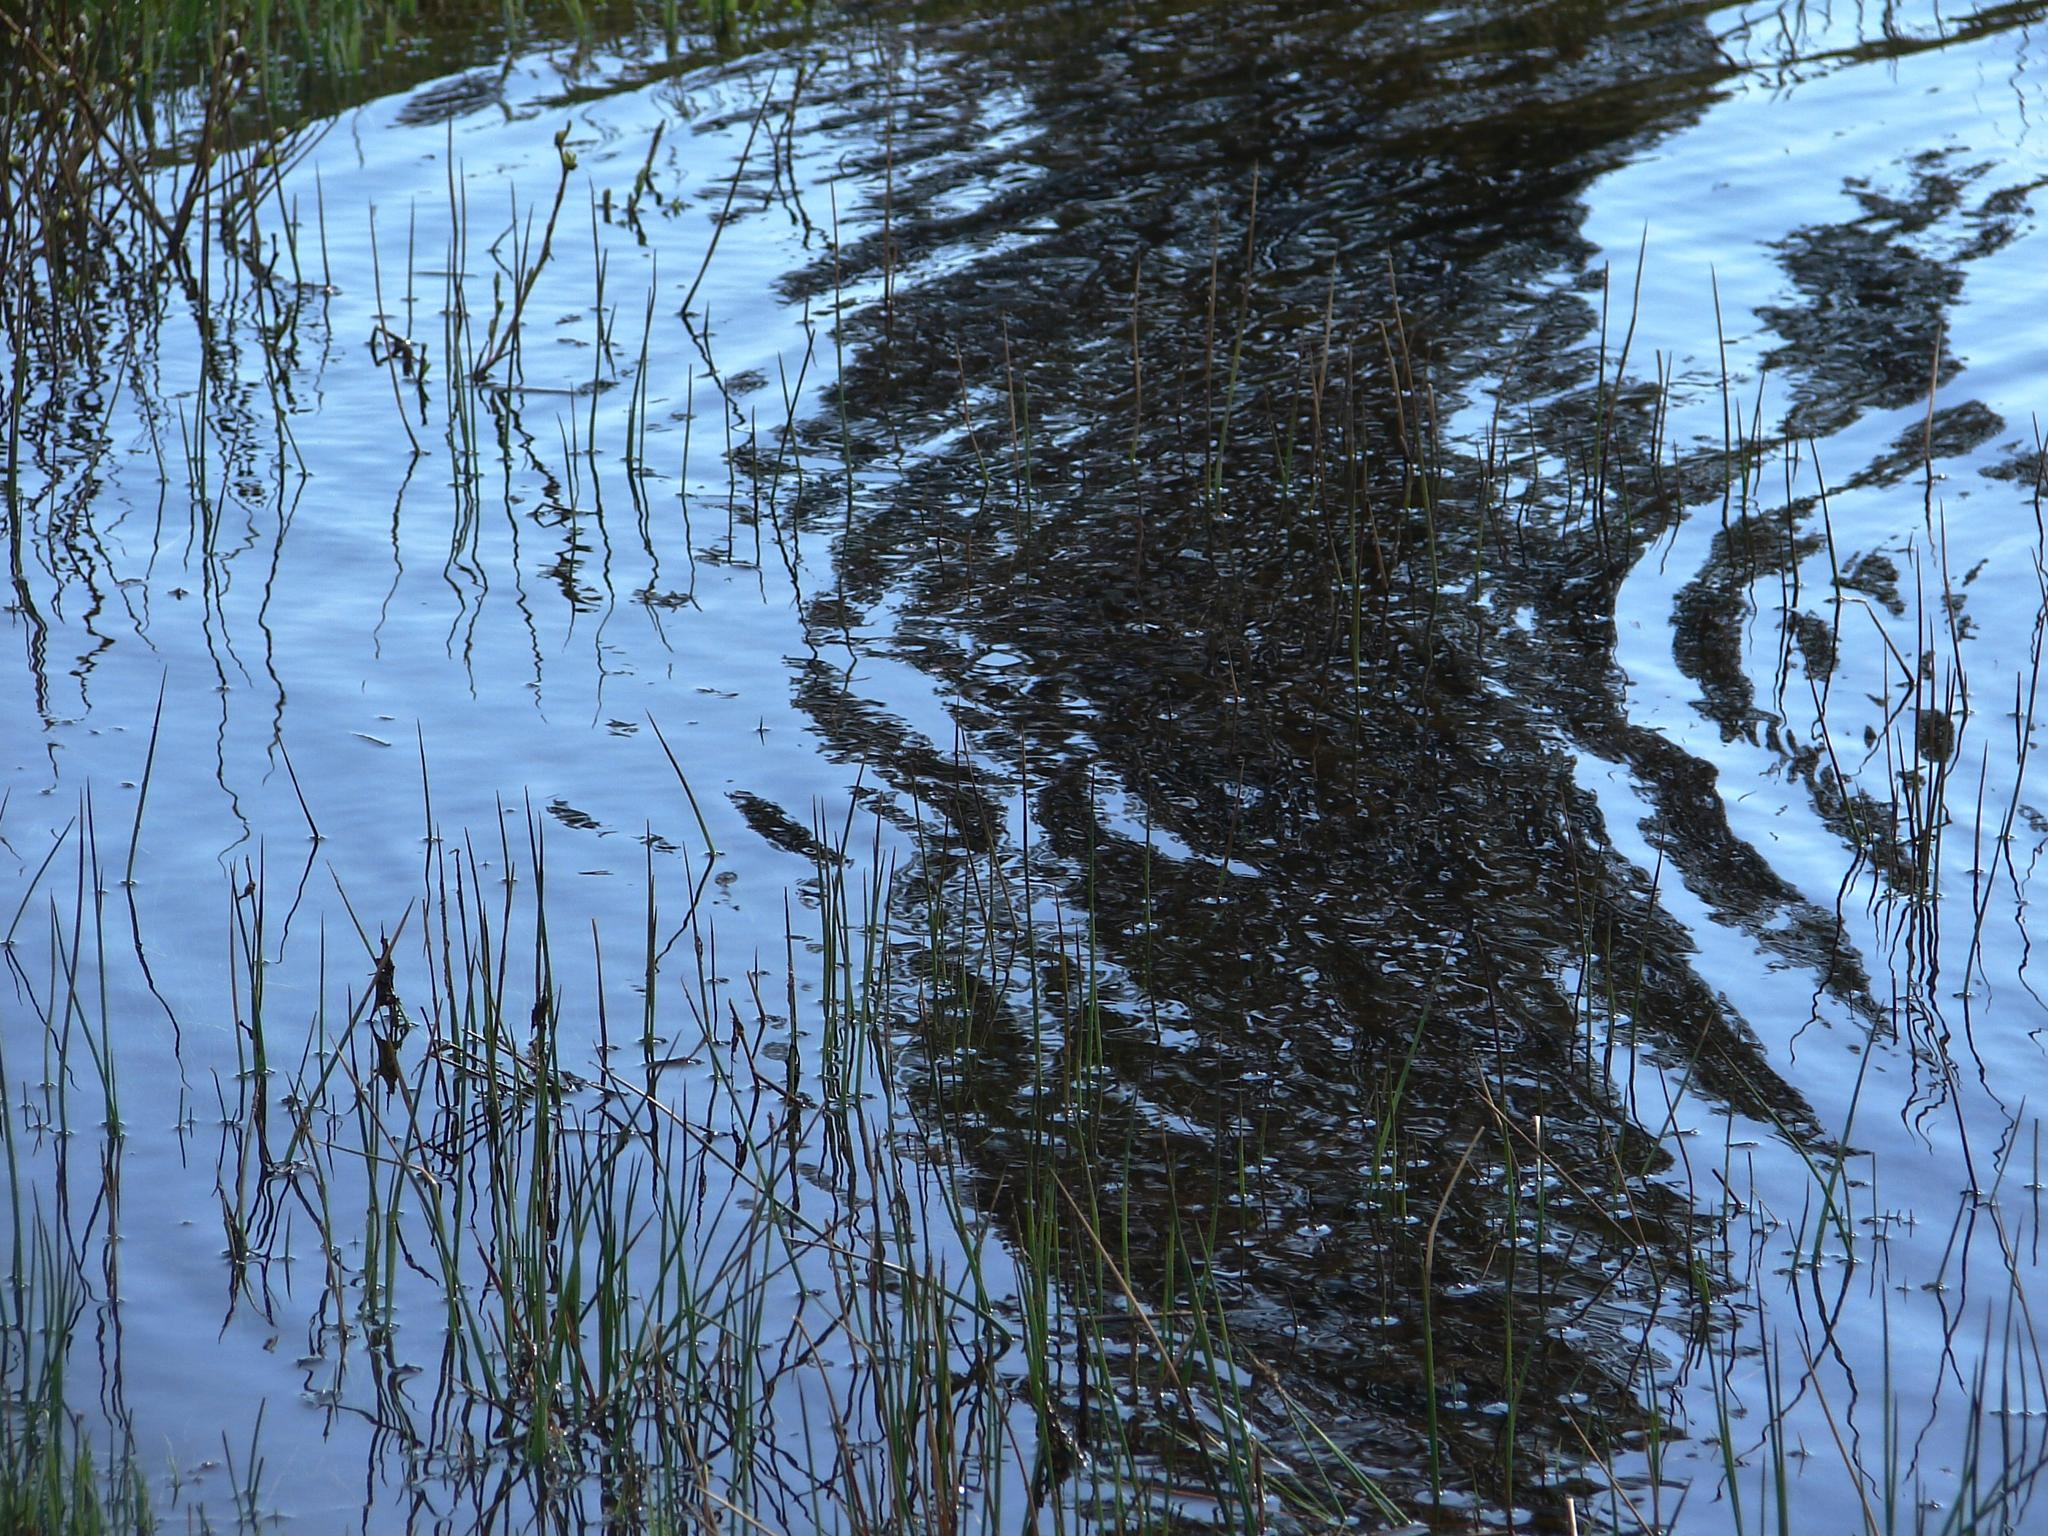 Ripples in the Reeds by MelanieAnnePhillips